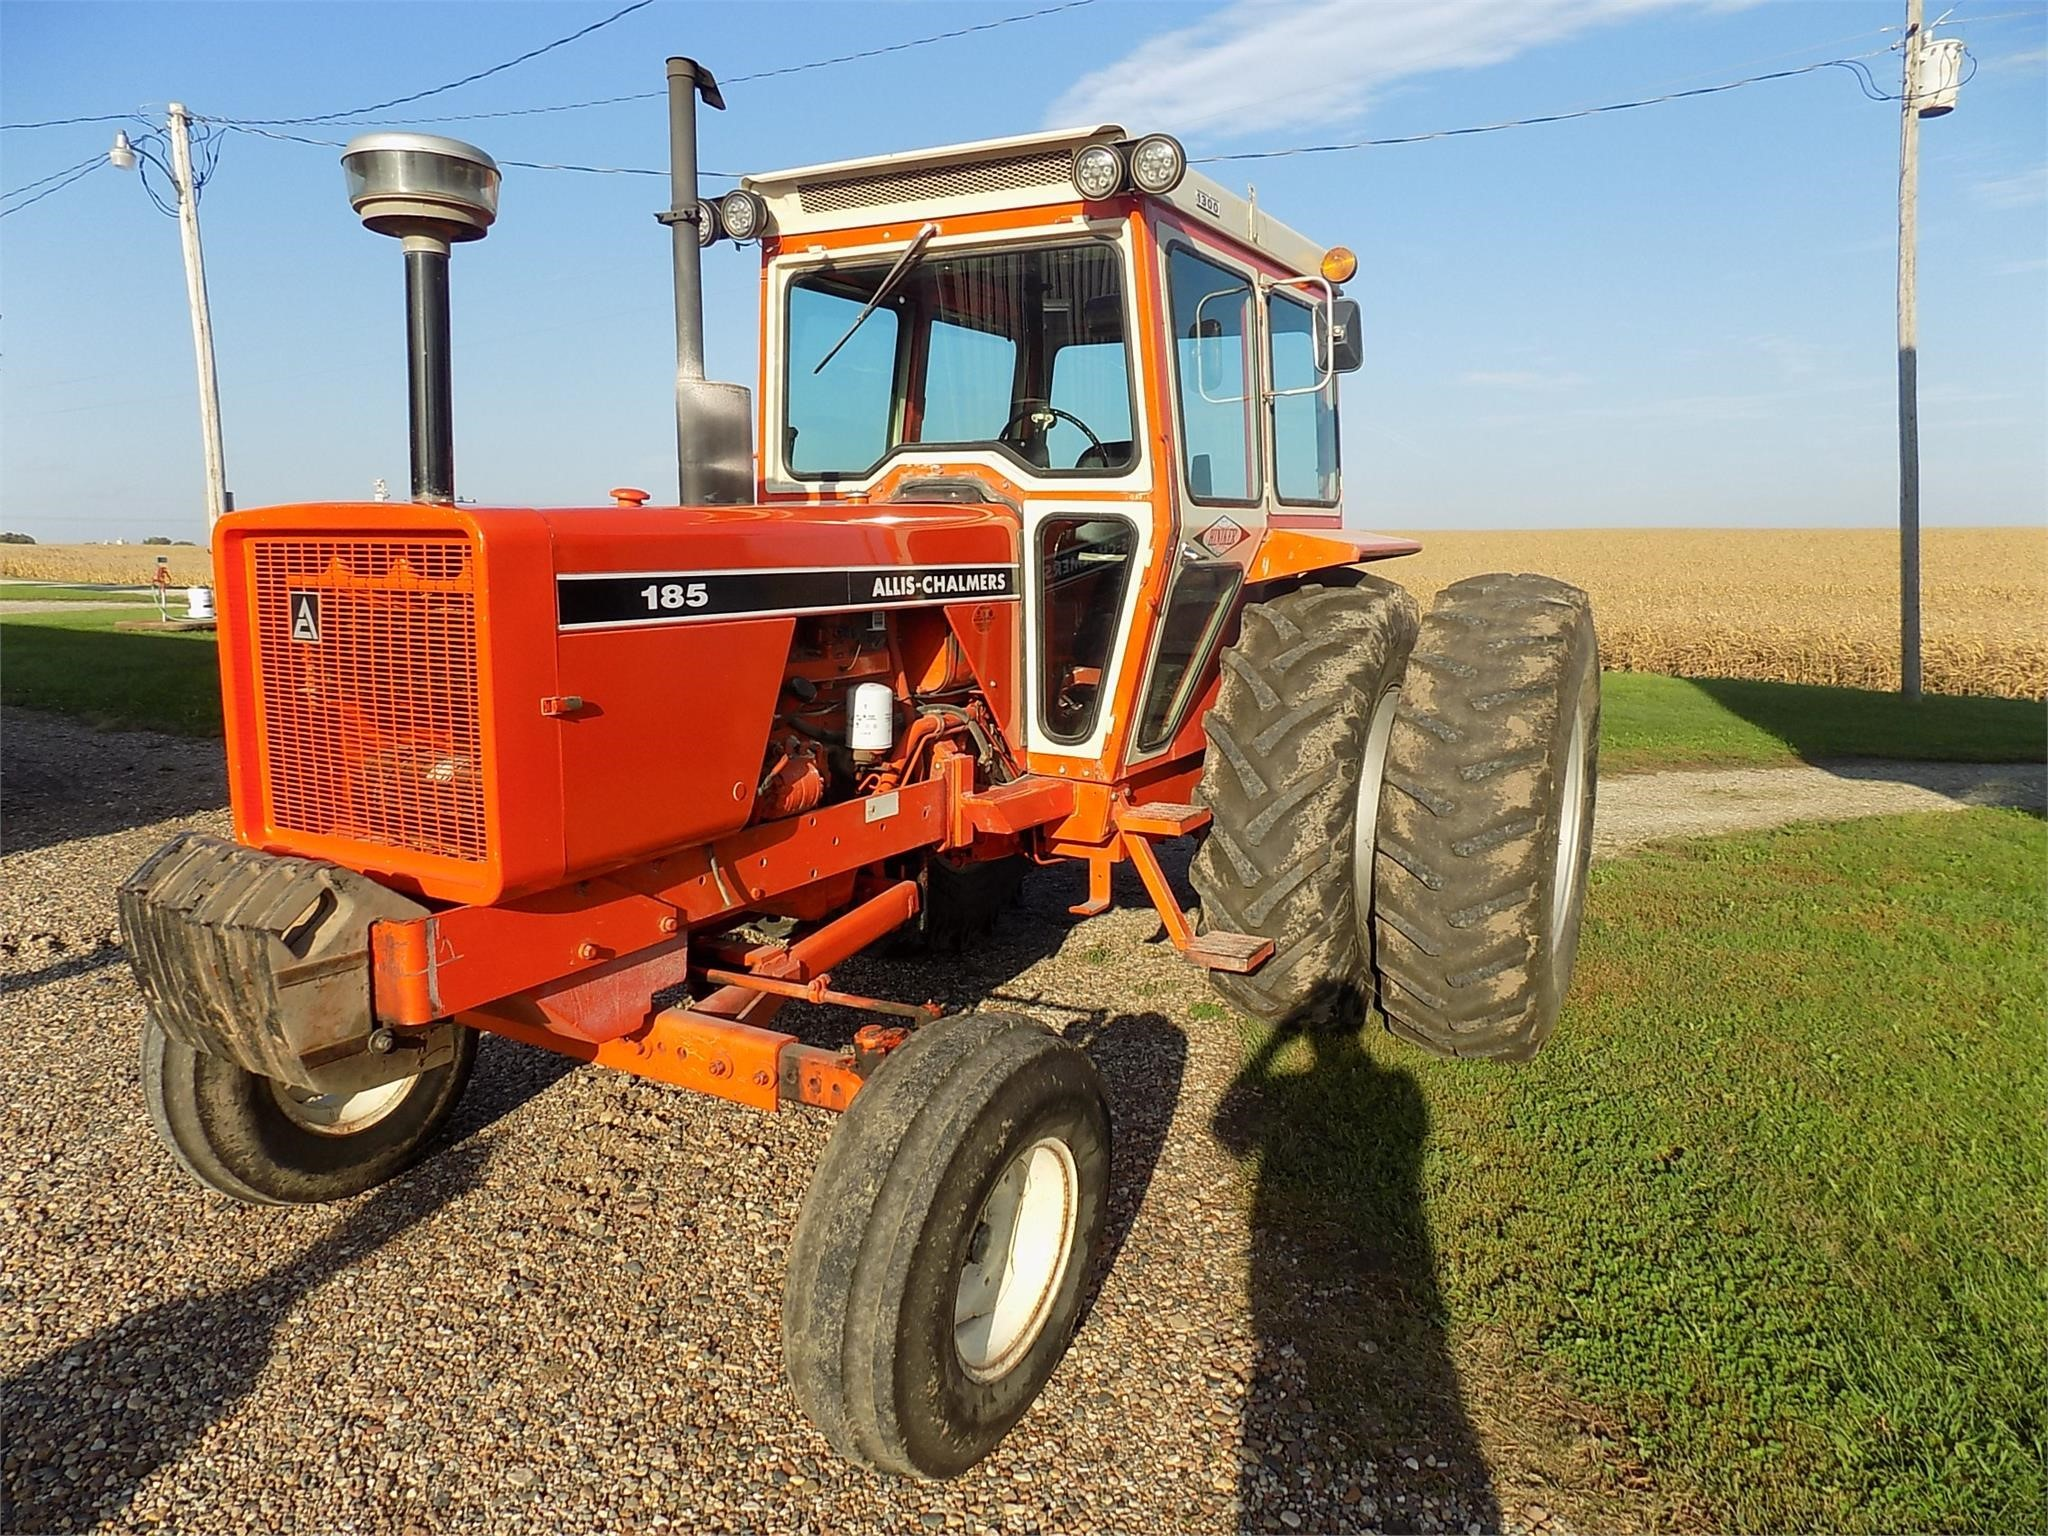 1980 Allis Chalmers 185 Tractor